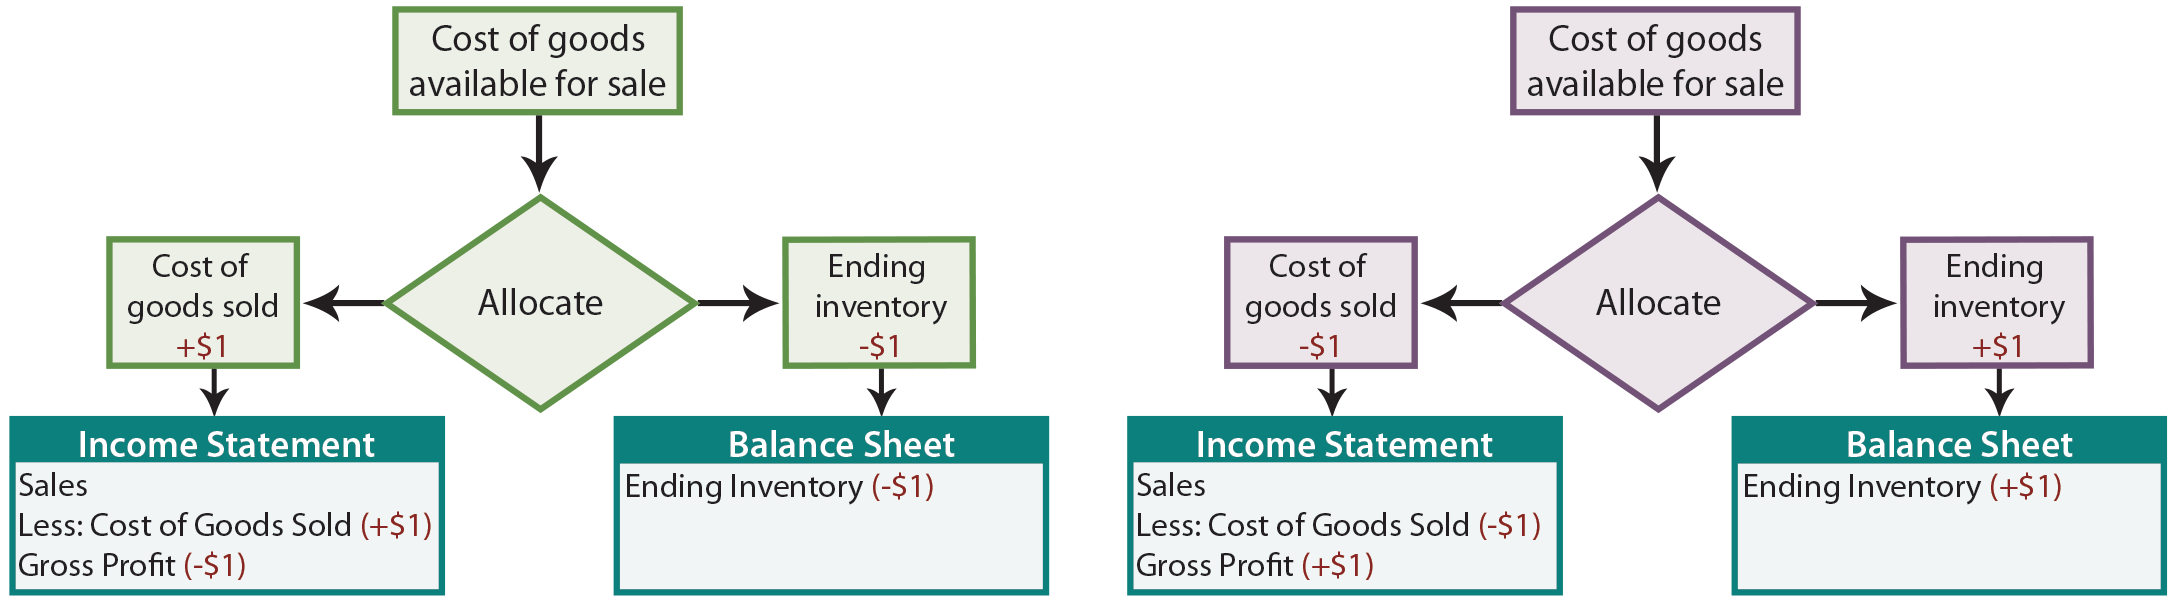 Allocation Process for Goods Available for Sale illustration